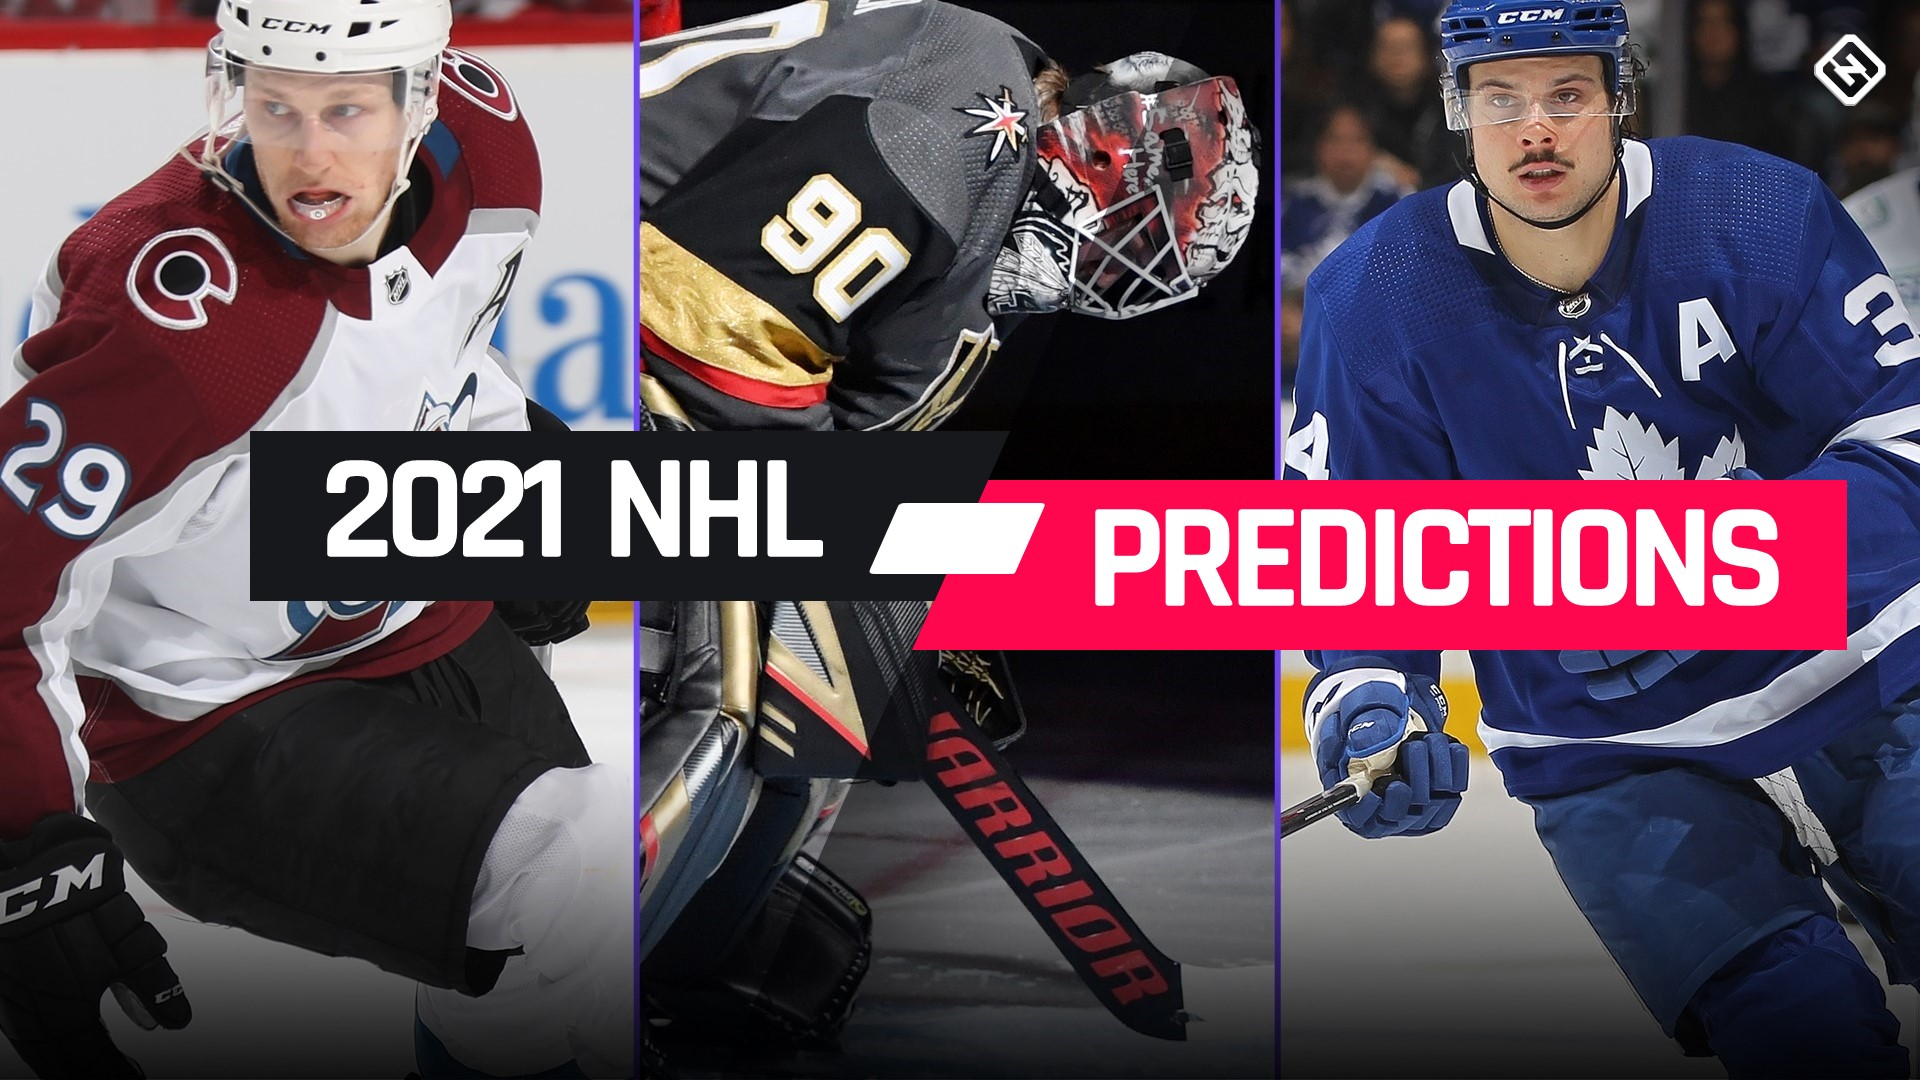 Predictions-011221-getty-ftrjpeg_rci92t6i5yu31f53ut6ivw9qq